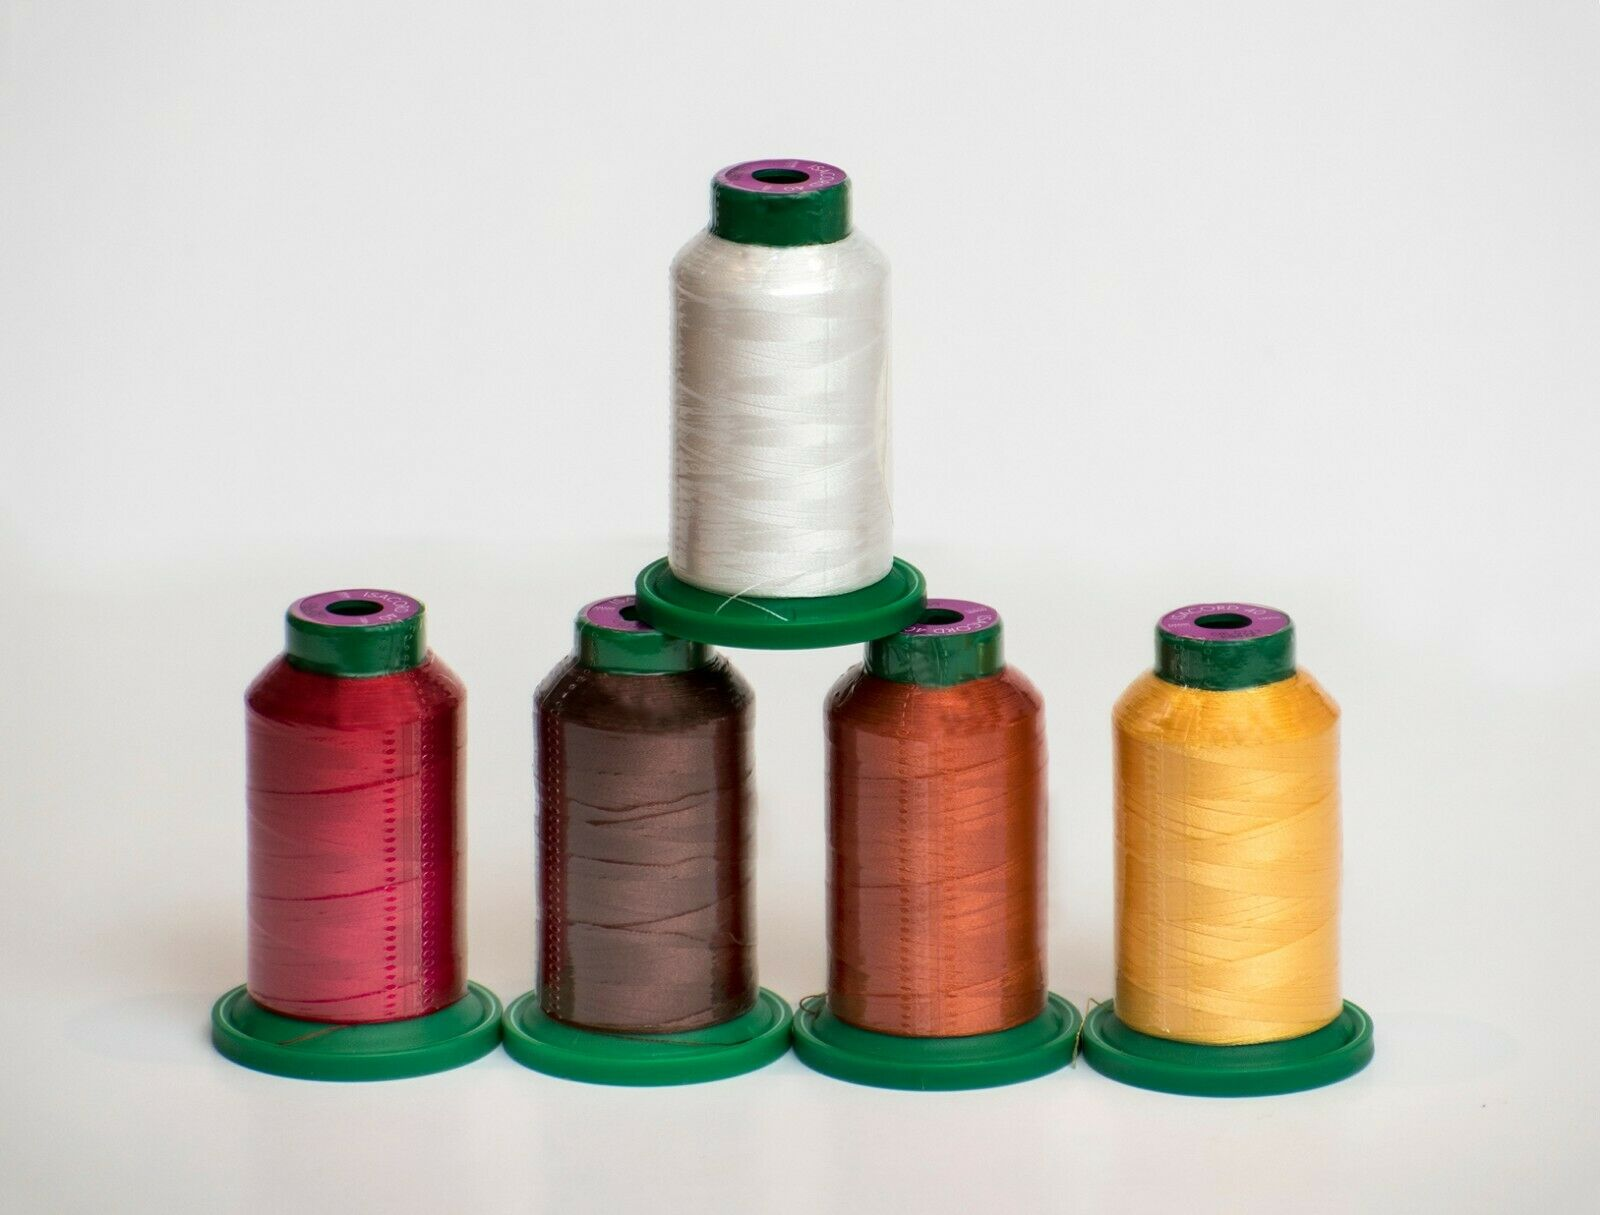 ISACORD EMBROIDERY THREAD 1000m FALL KIT- 5 count